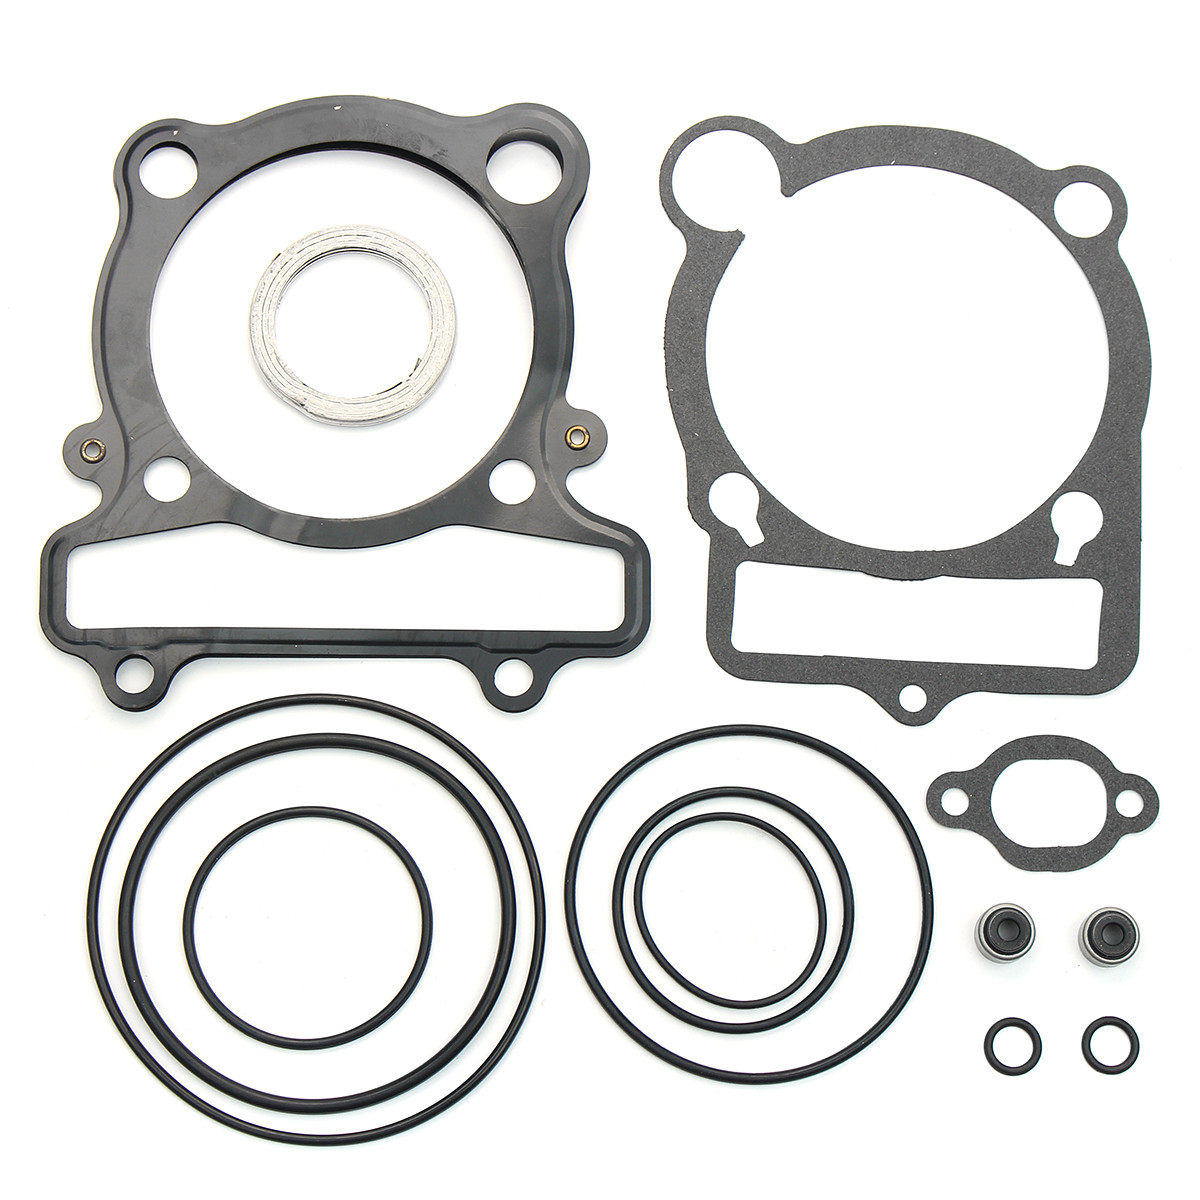 Top End Head Gasket Kit Set For YAMAHA Warrior 350 Raptor Big Bear Wolverine